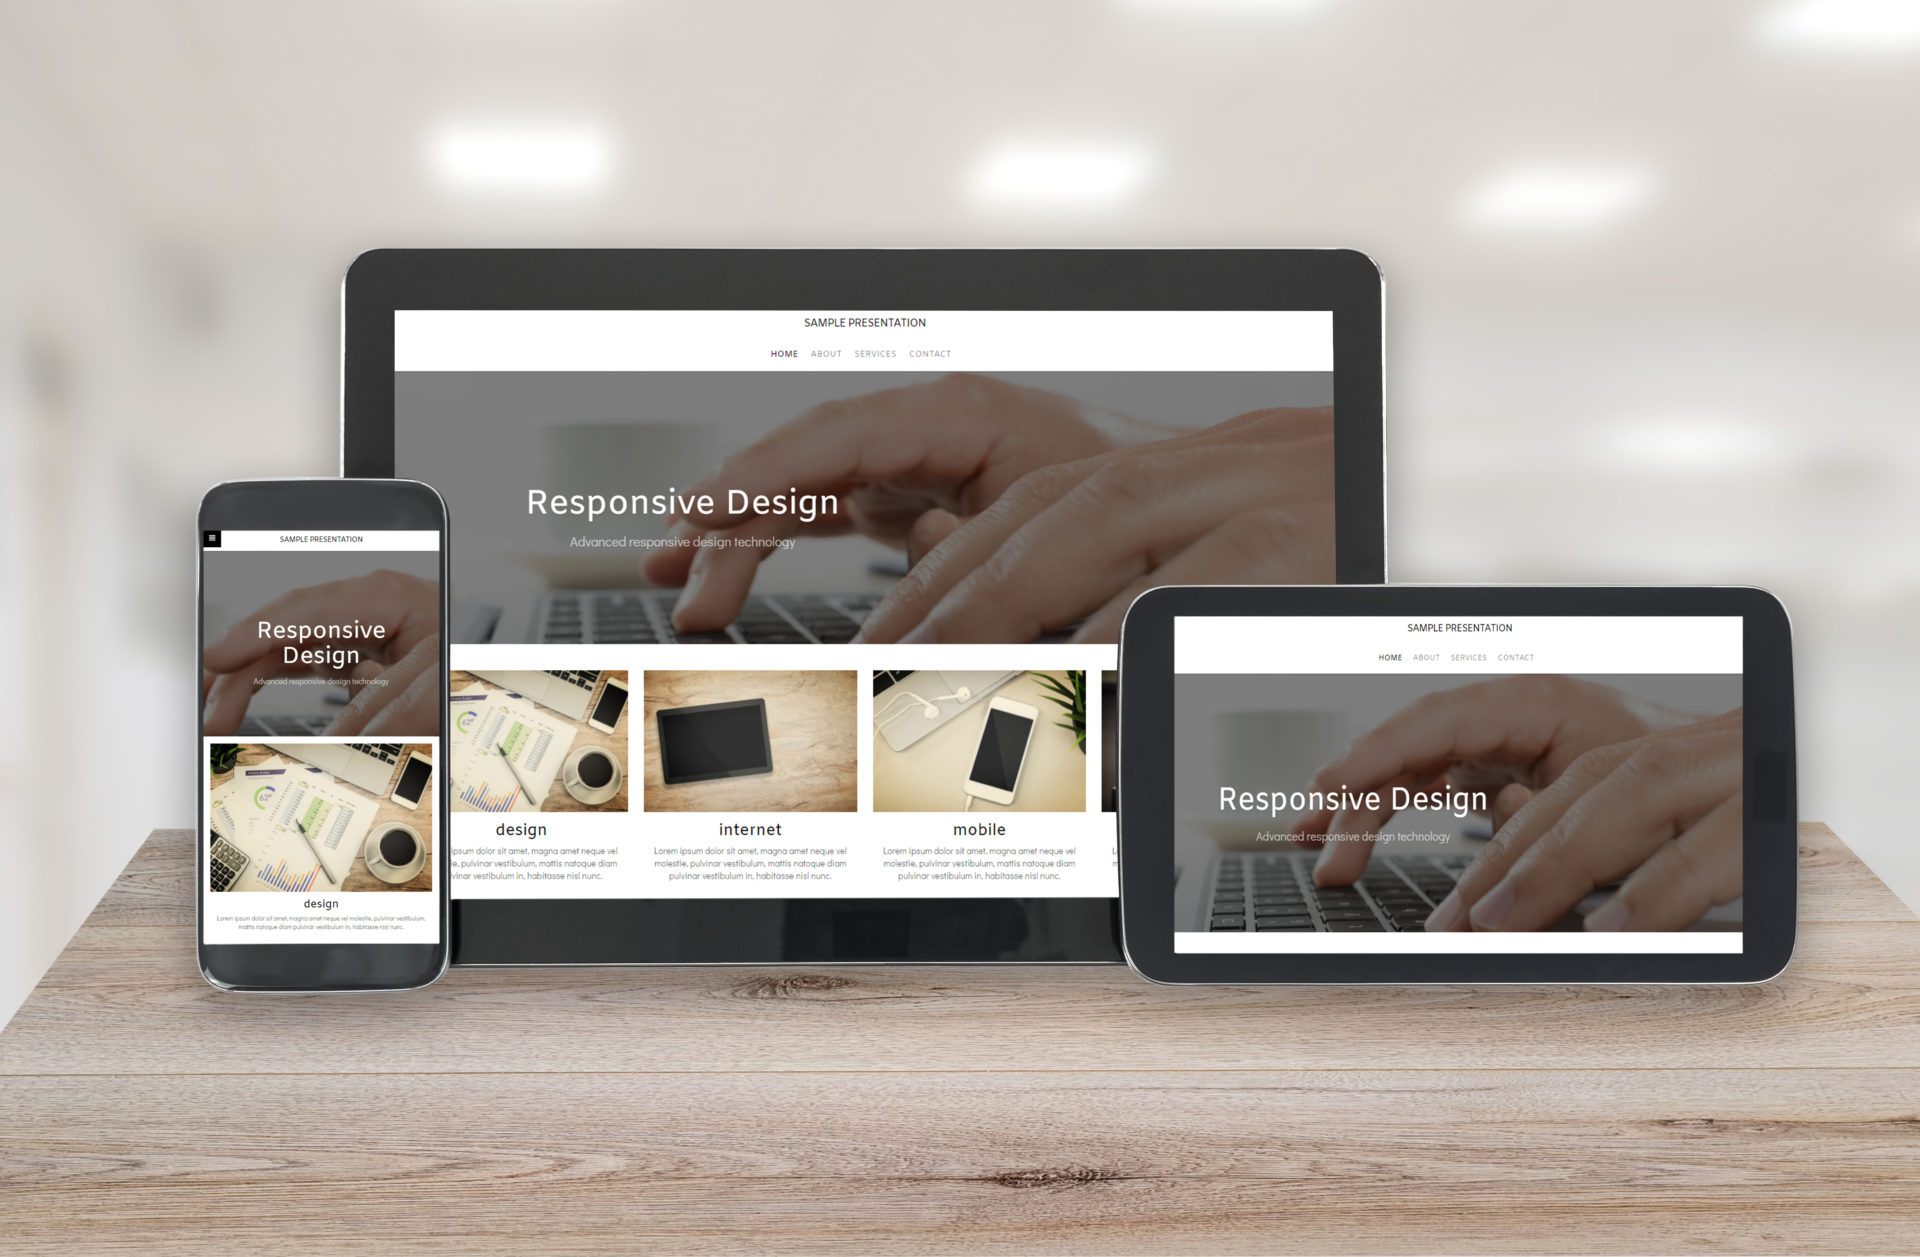 Responsive design technology